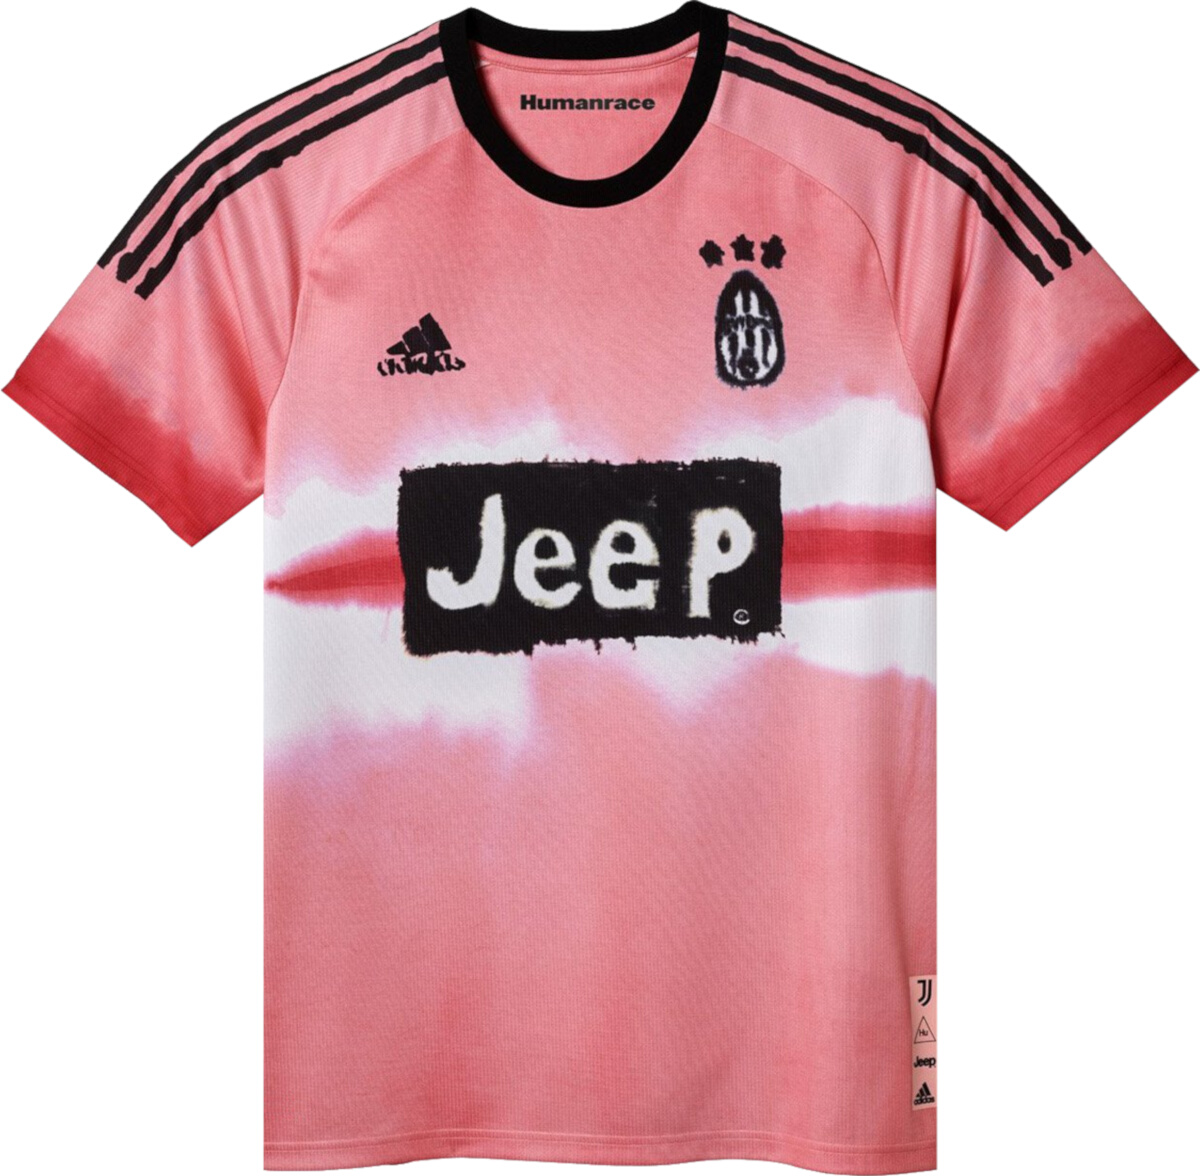 Adidas Juventus Pink 'Human Race' Jersey   Incorporated Style